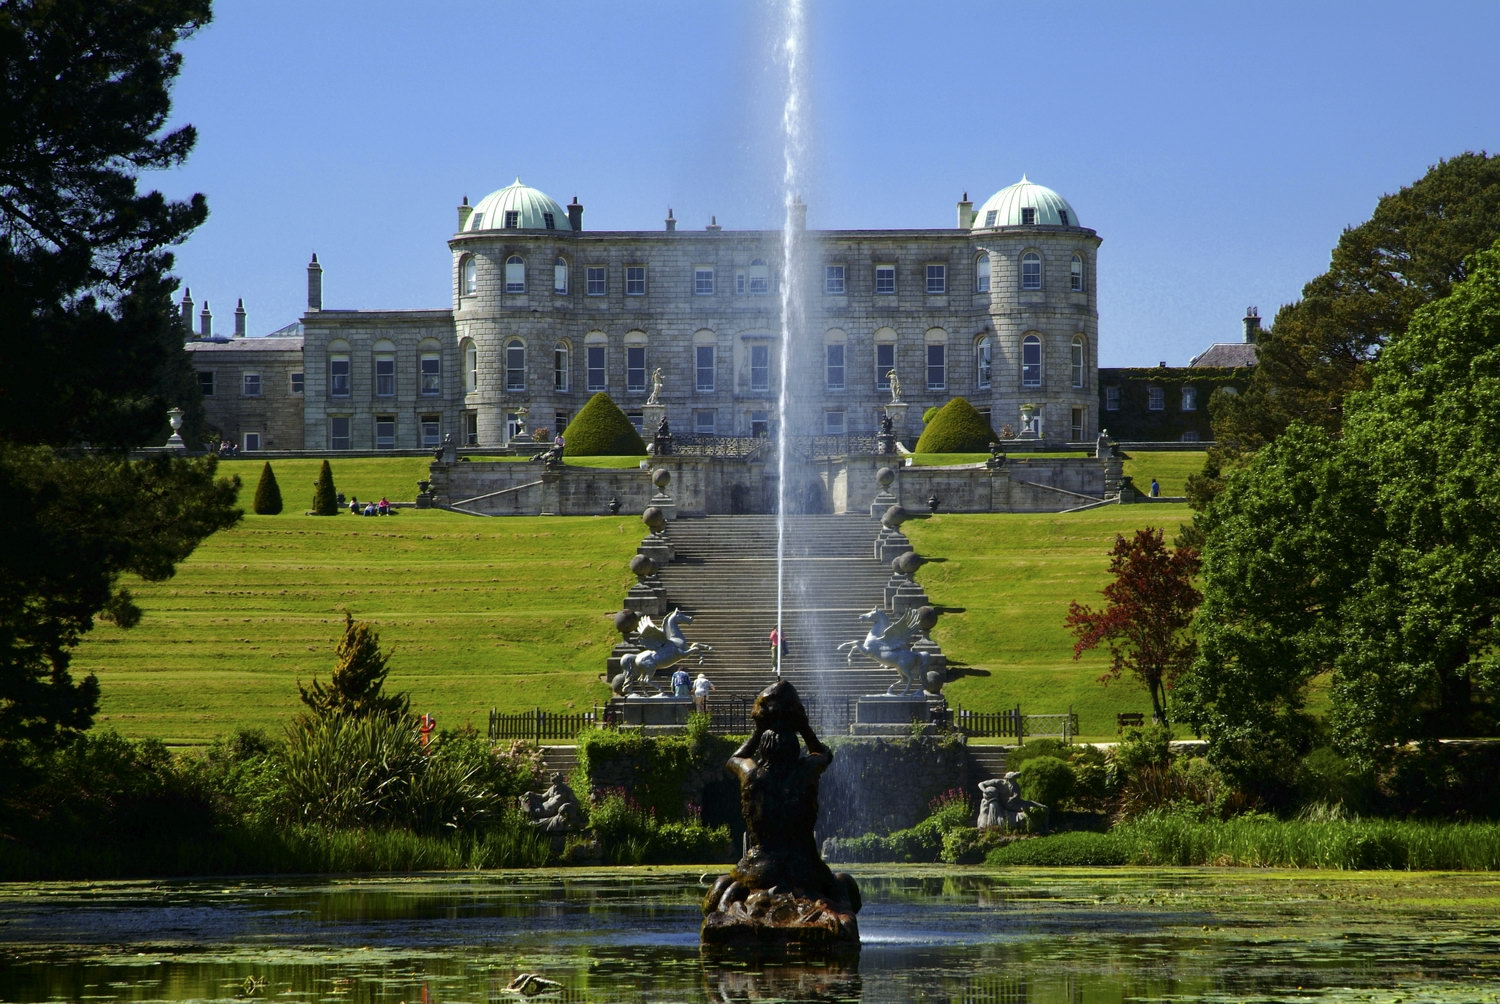 Life As A Human Ireland 3 Ireland Powerscourt House And Gardens County Wicklow Picture